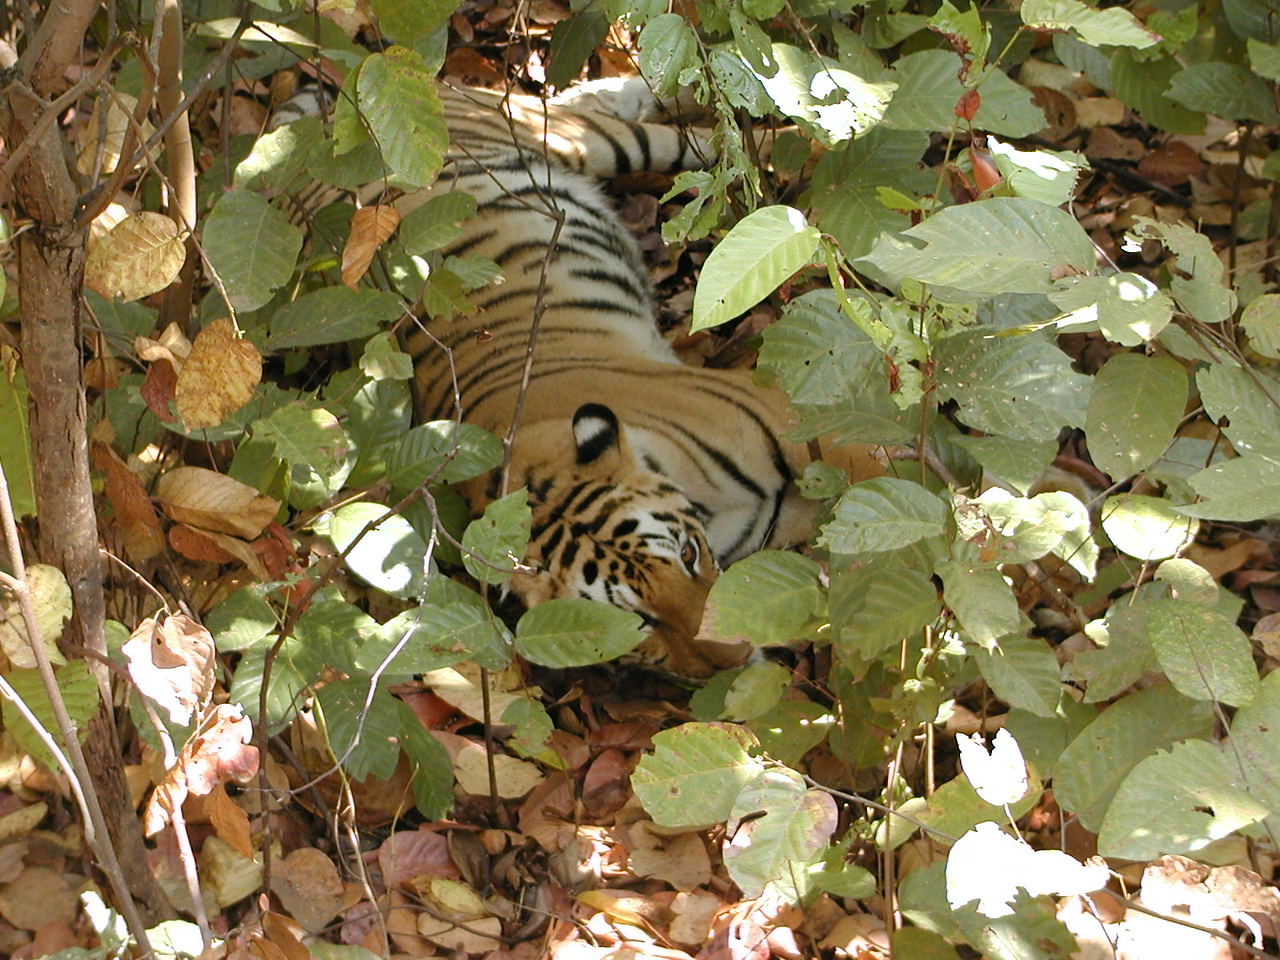 Another tiger seen from elephant-back.